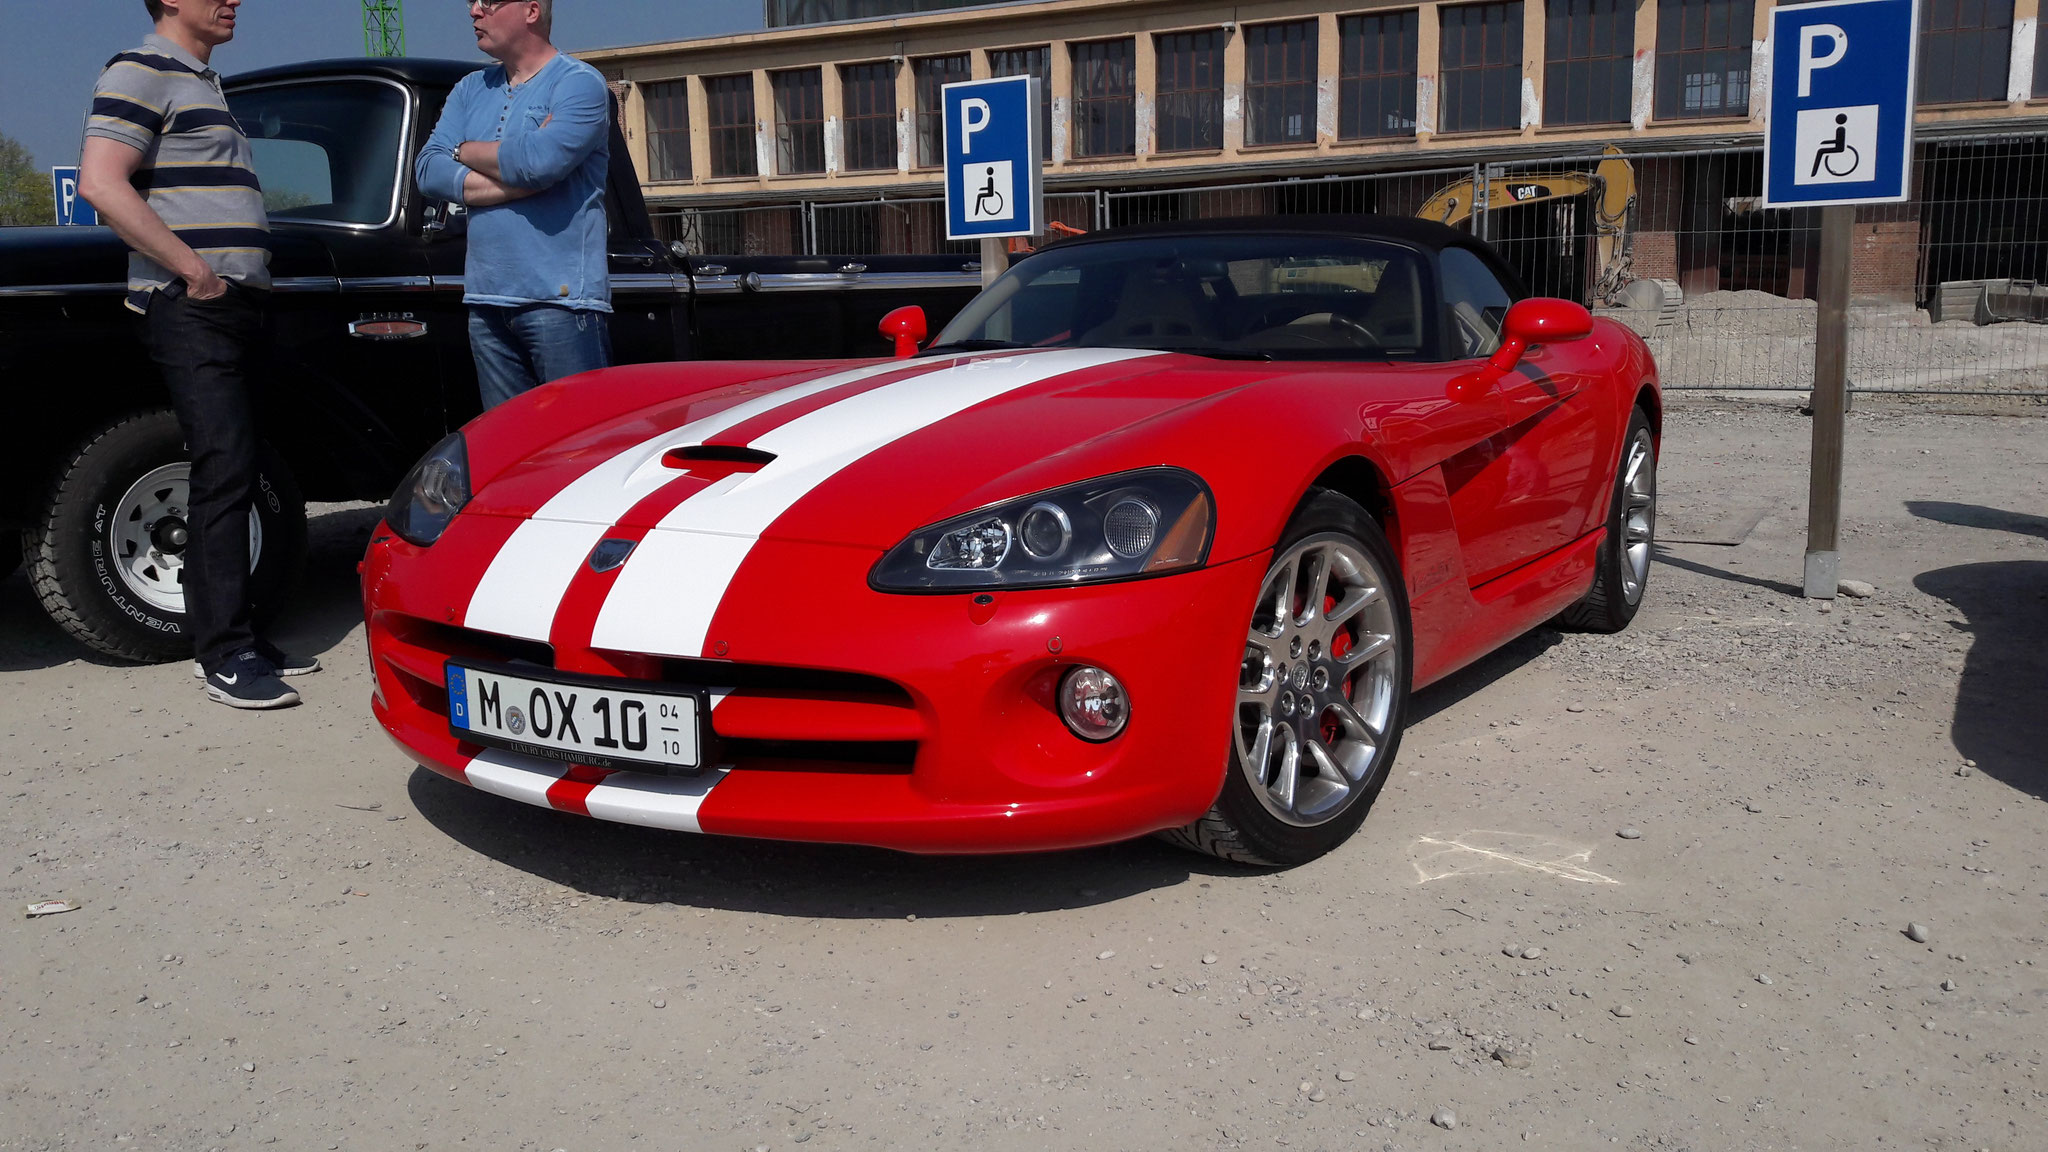 Dodge Viper SRT10 - M-OX-10